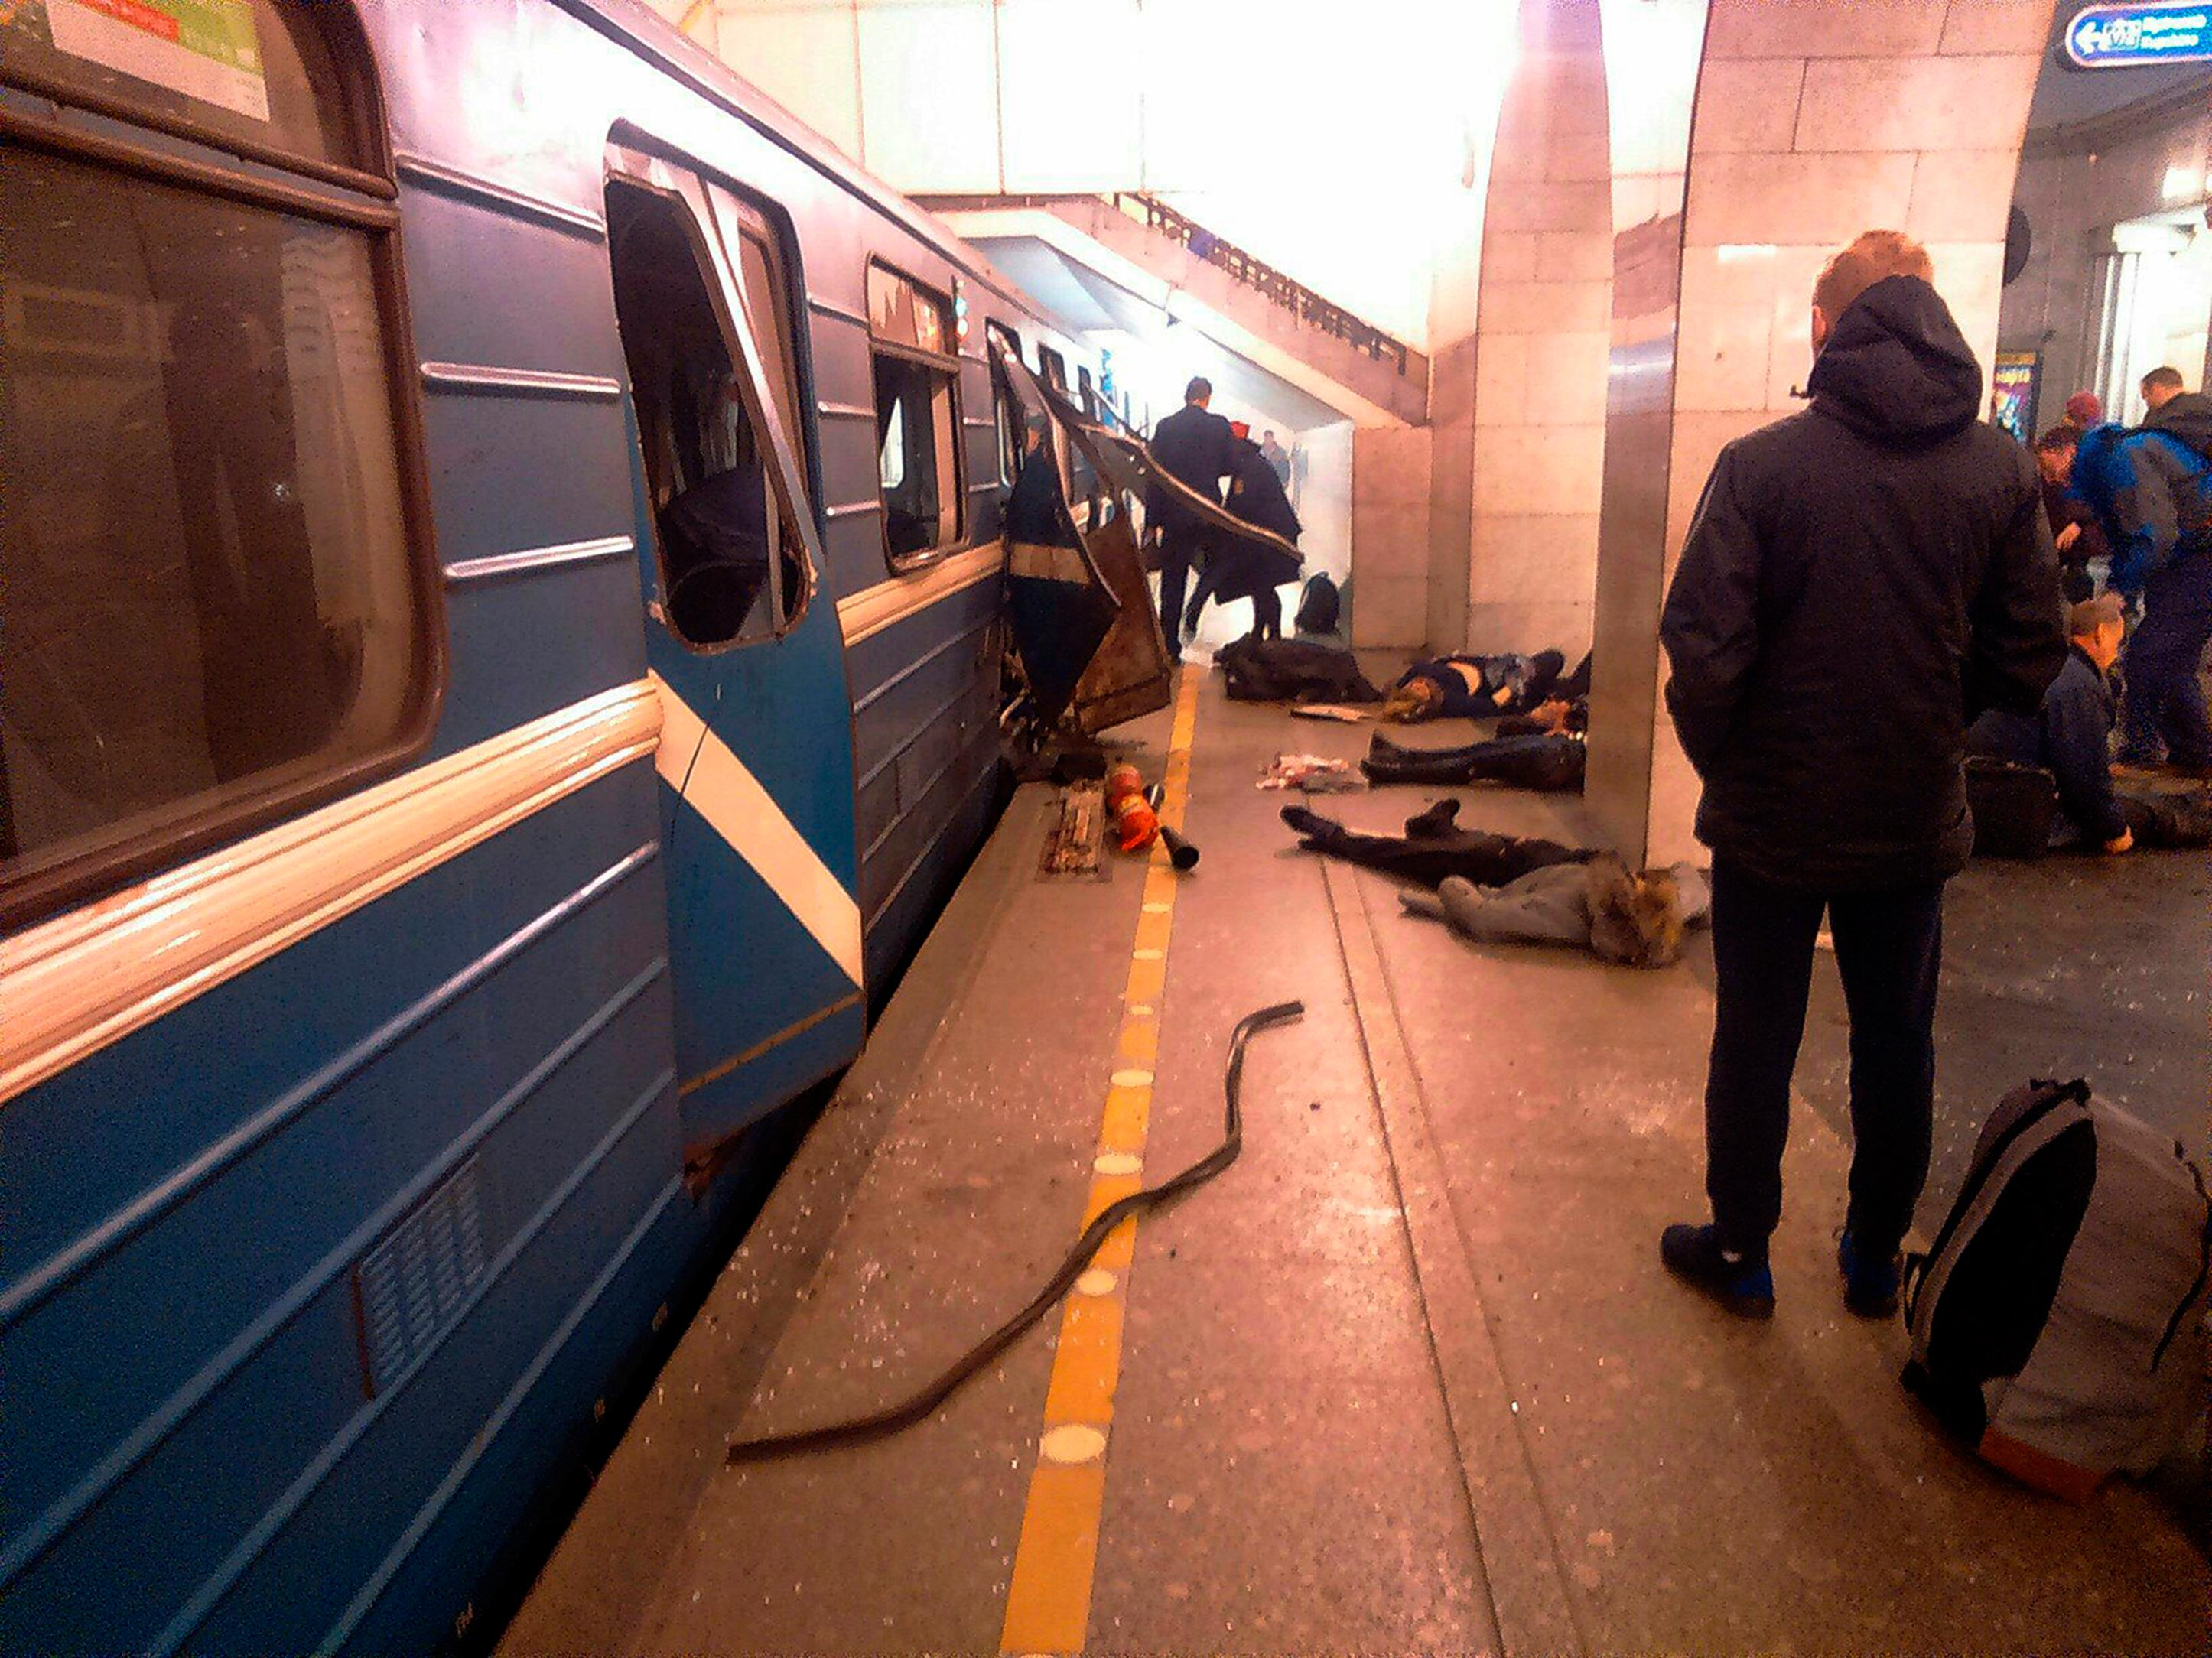 Blast victims lie near a subway train hit by a explosion at the Tekhnologichesky Institut subway station in St.Petersburg, Russia, Monday, April 3, 2017. The subway in the Russian city of St. Petersburg is reporting that several people have been injured in an explosion on a subway train. (AP Photo/DTP&ChP St. Peterburg via AP)